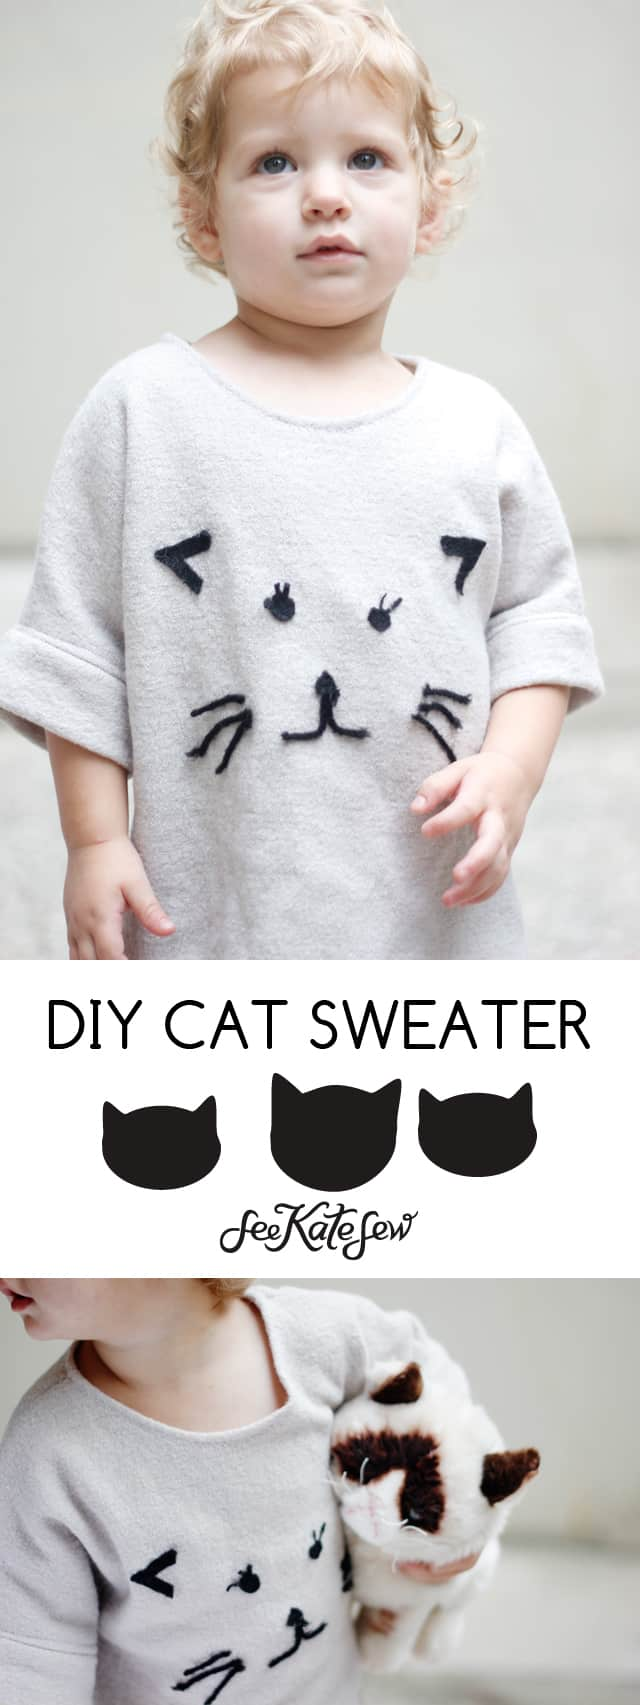 diy-cat-sweater-11